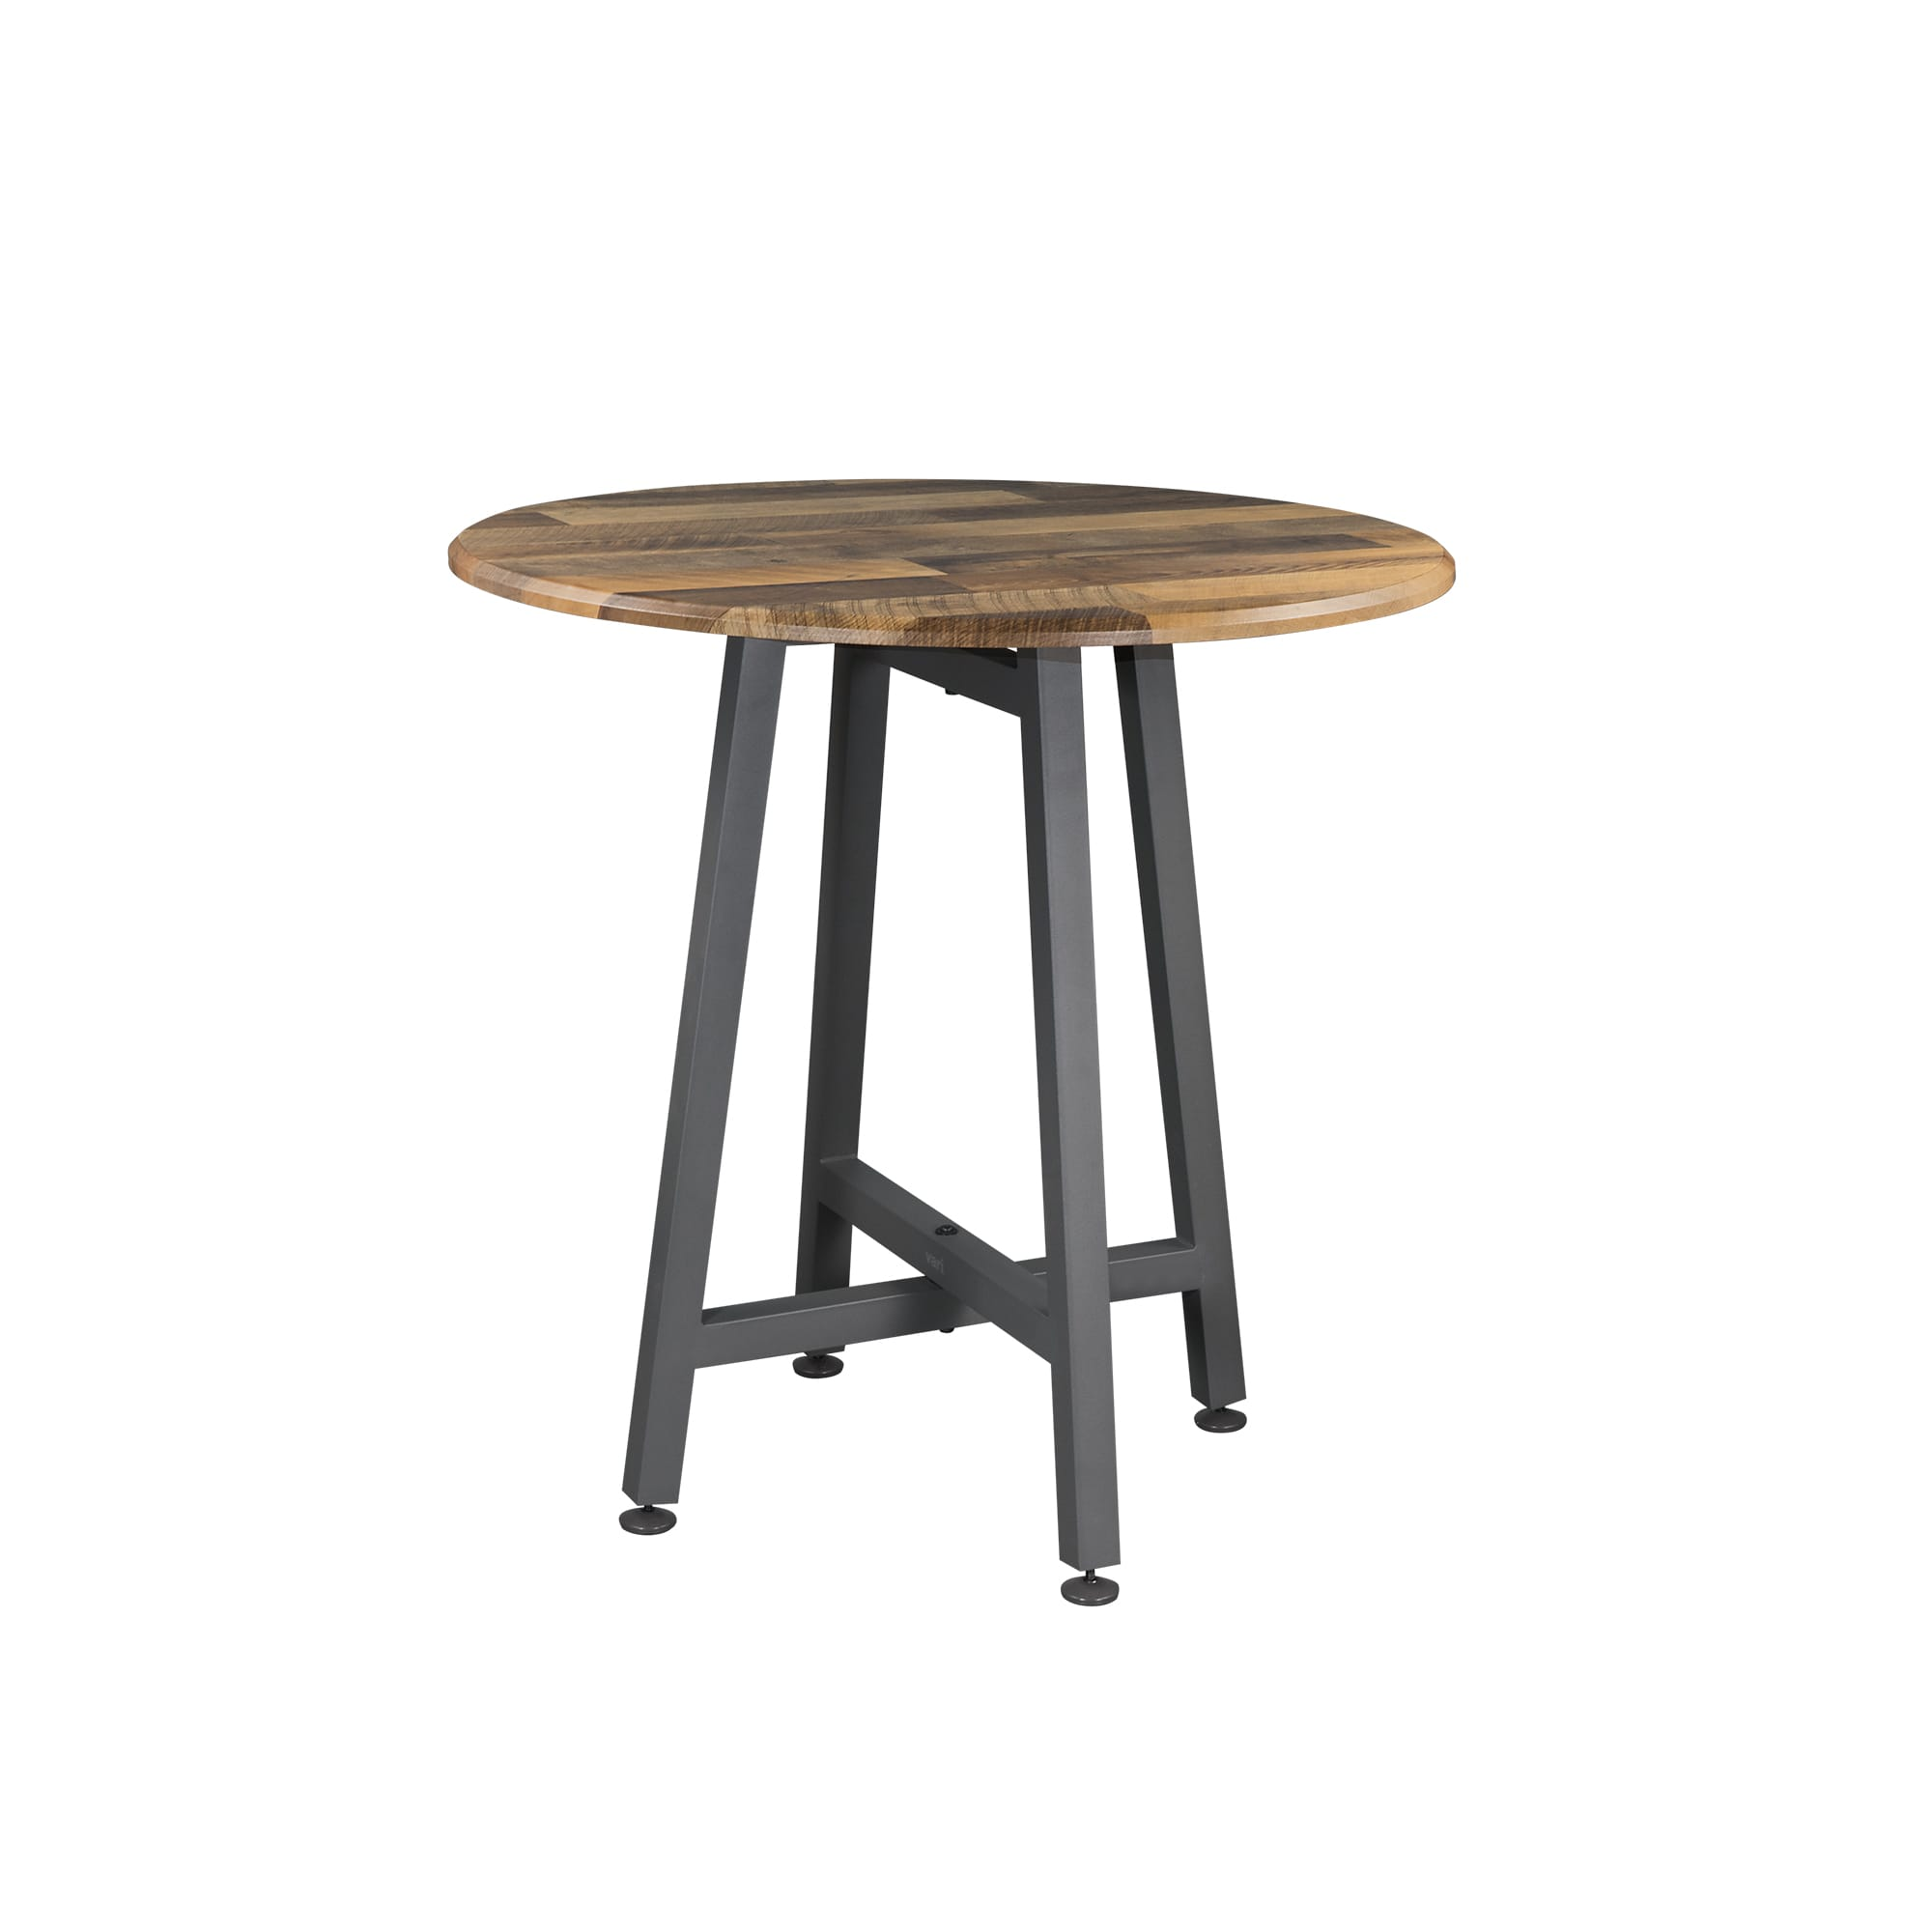 Standing Round Table Reclaimed Wood